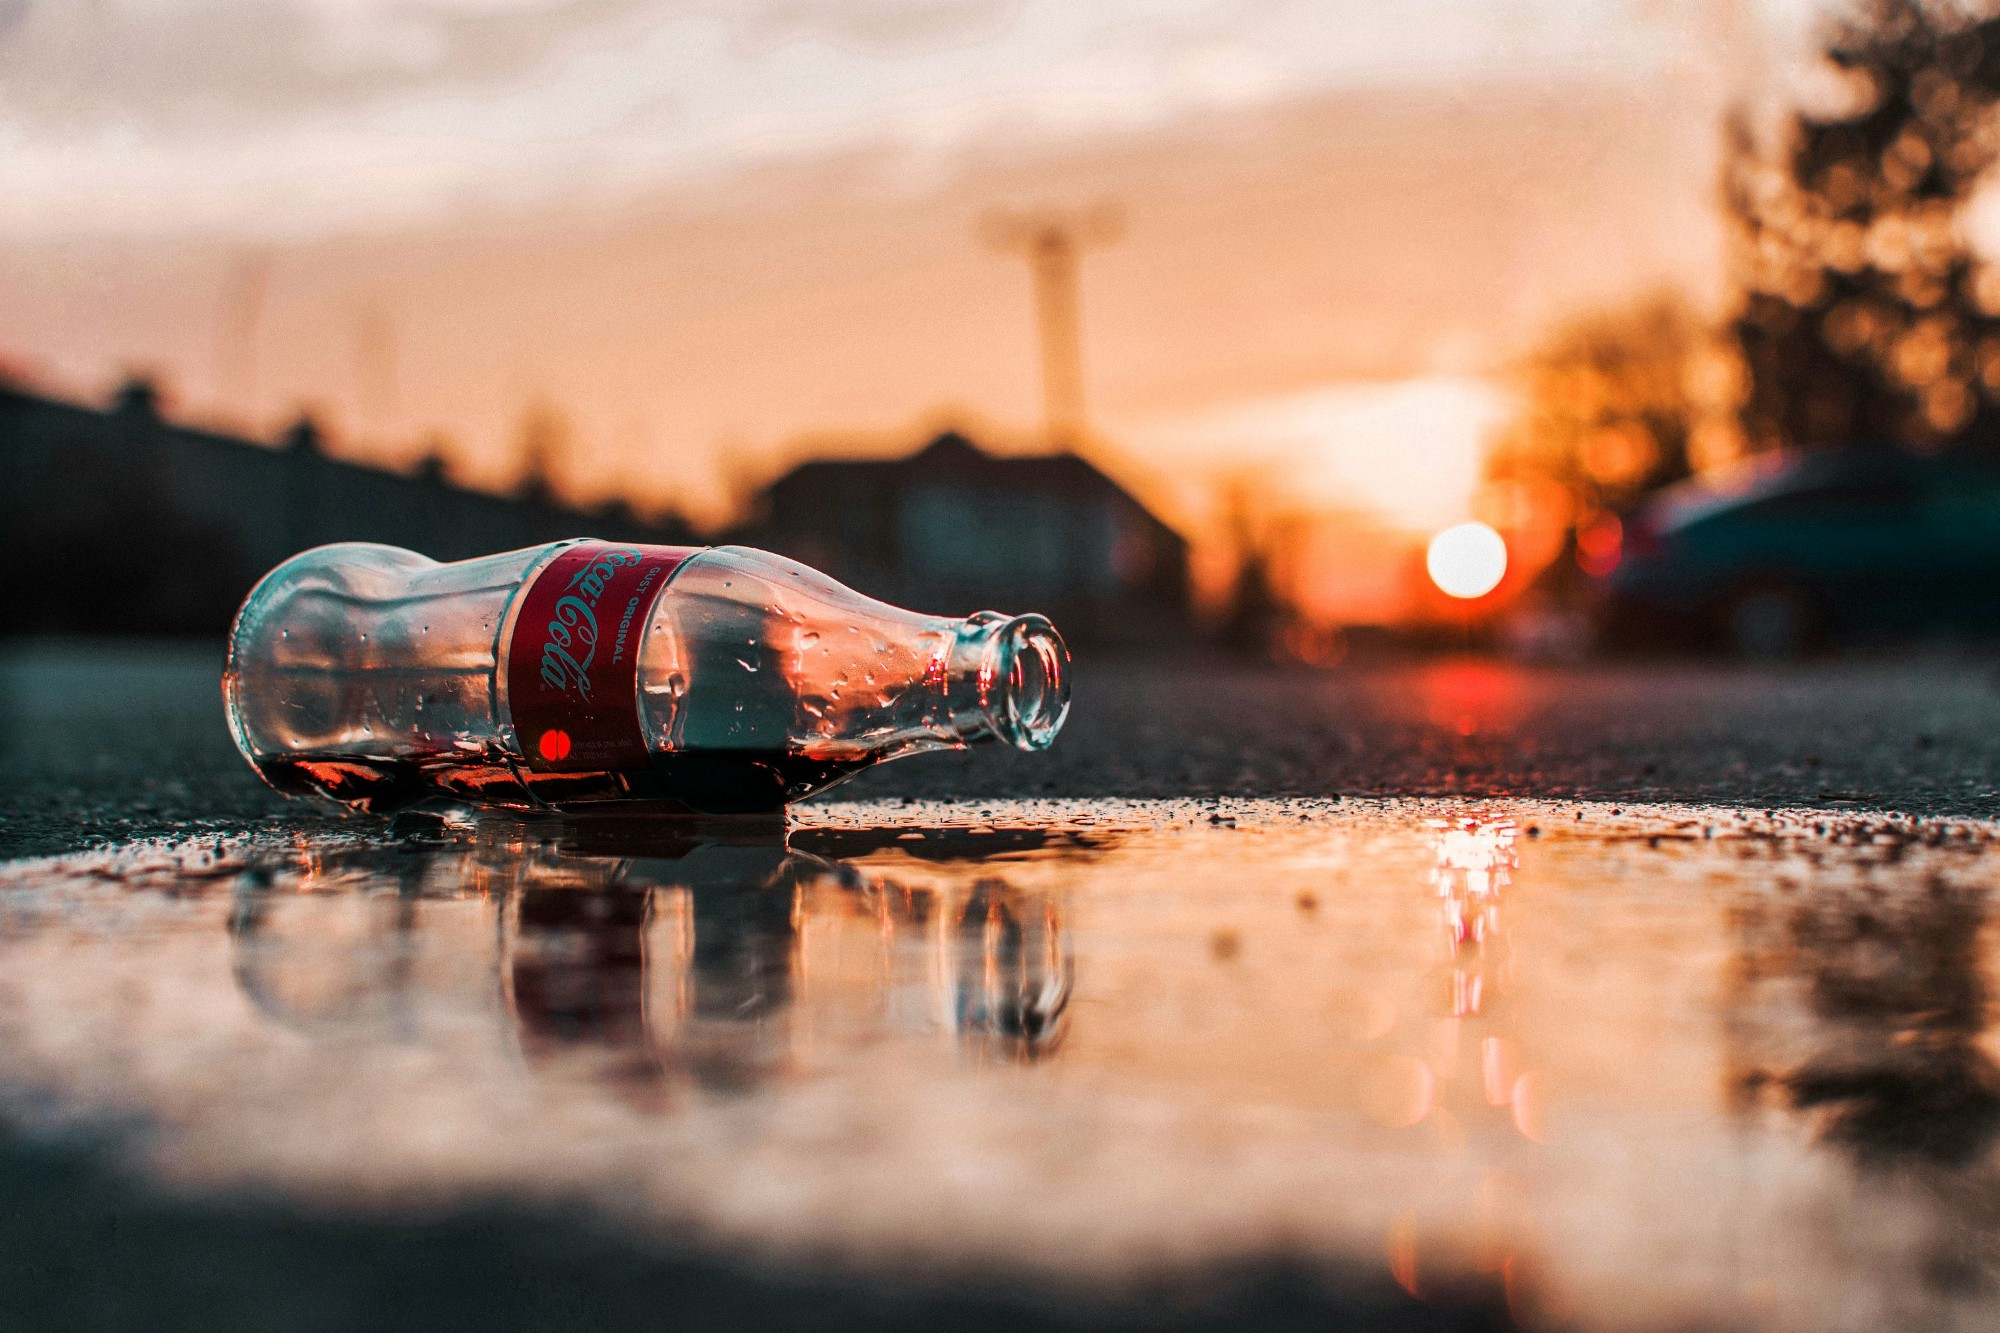 An opened Glass Coke bottle on the ground near a puddle of Coke. Sun is setting in the background.